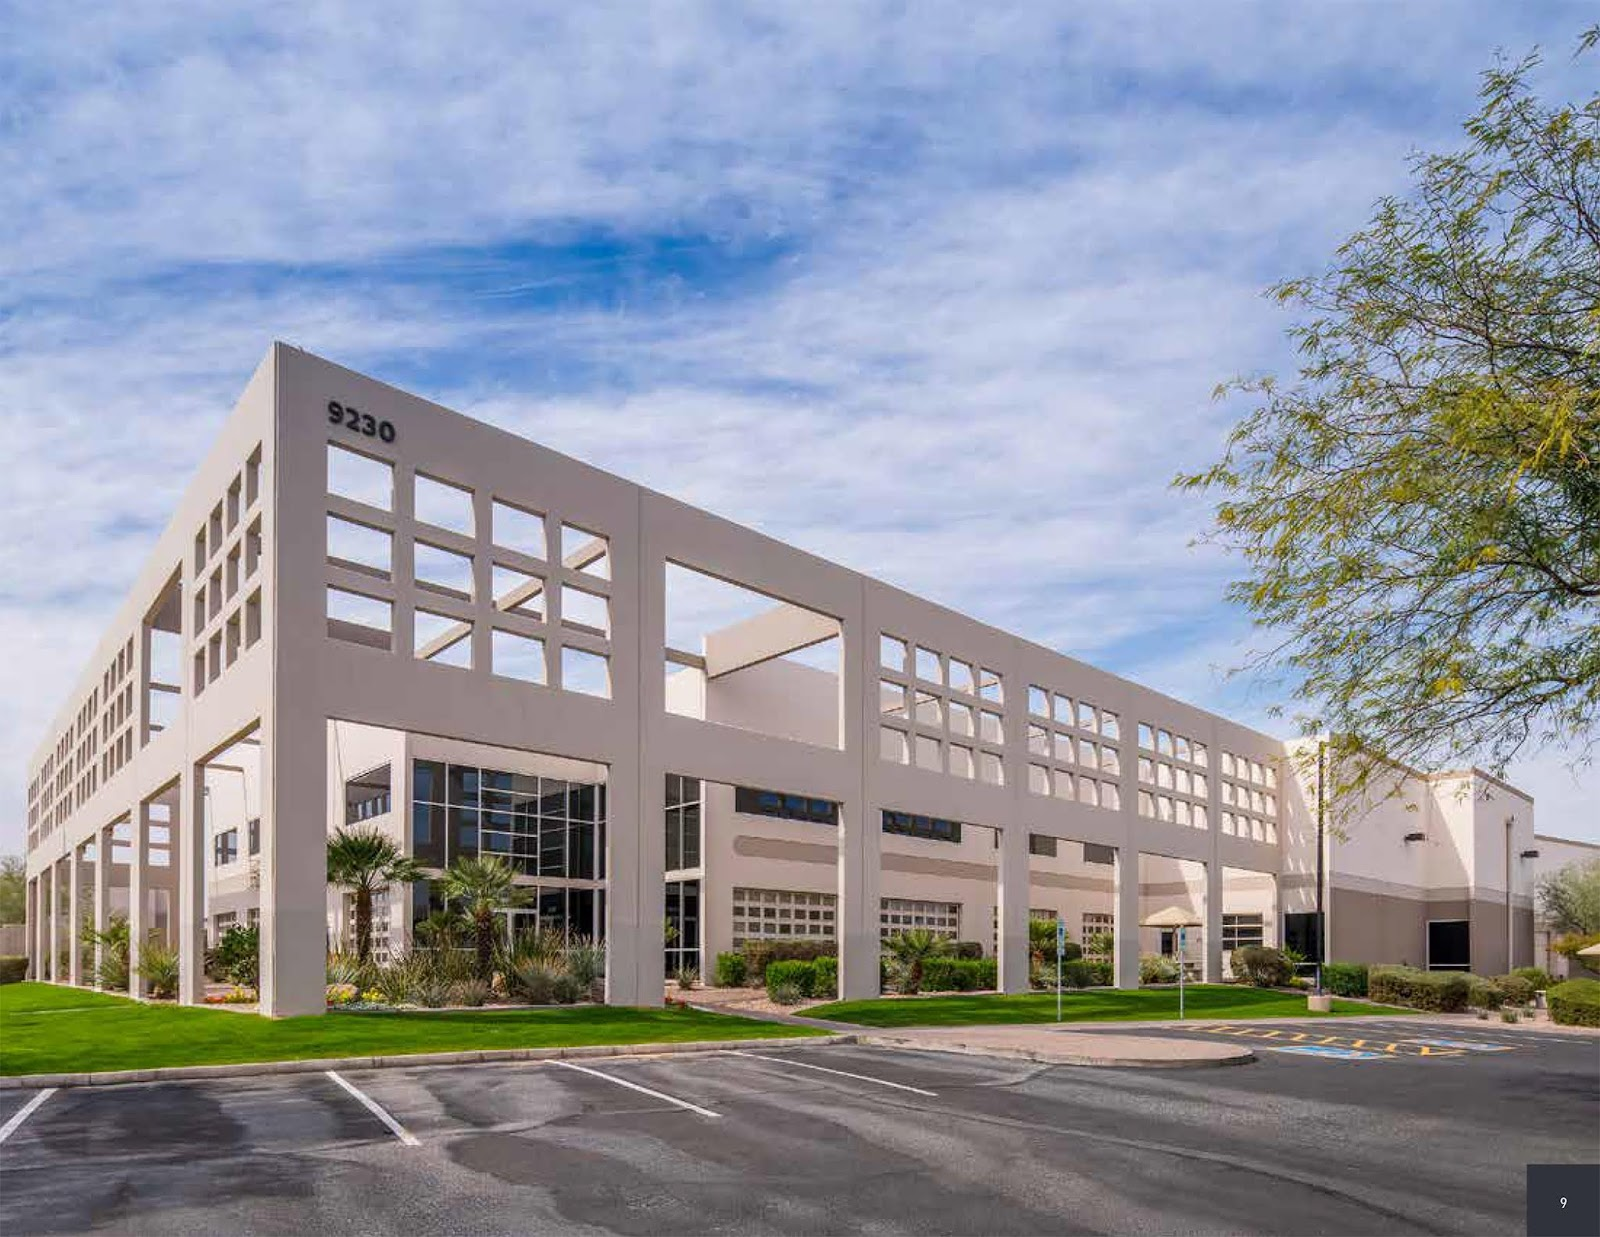 Done Deals: JLL sells fully leased Tempe, AZ Distribution Center